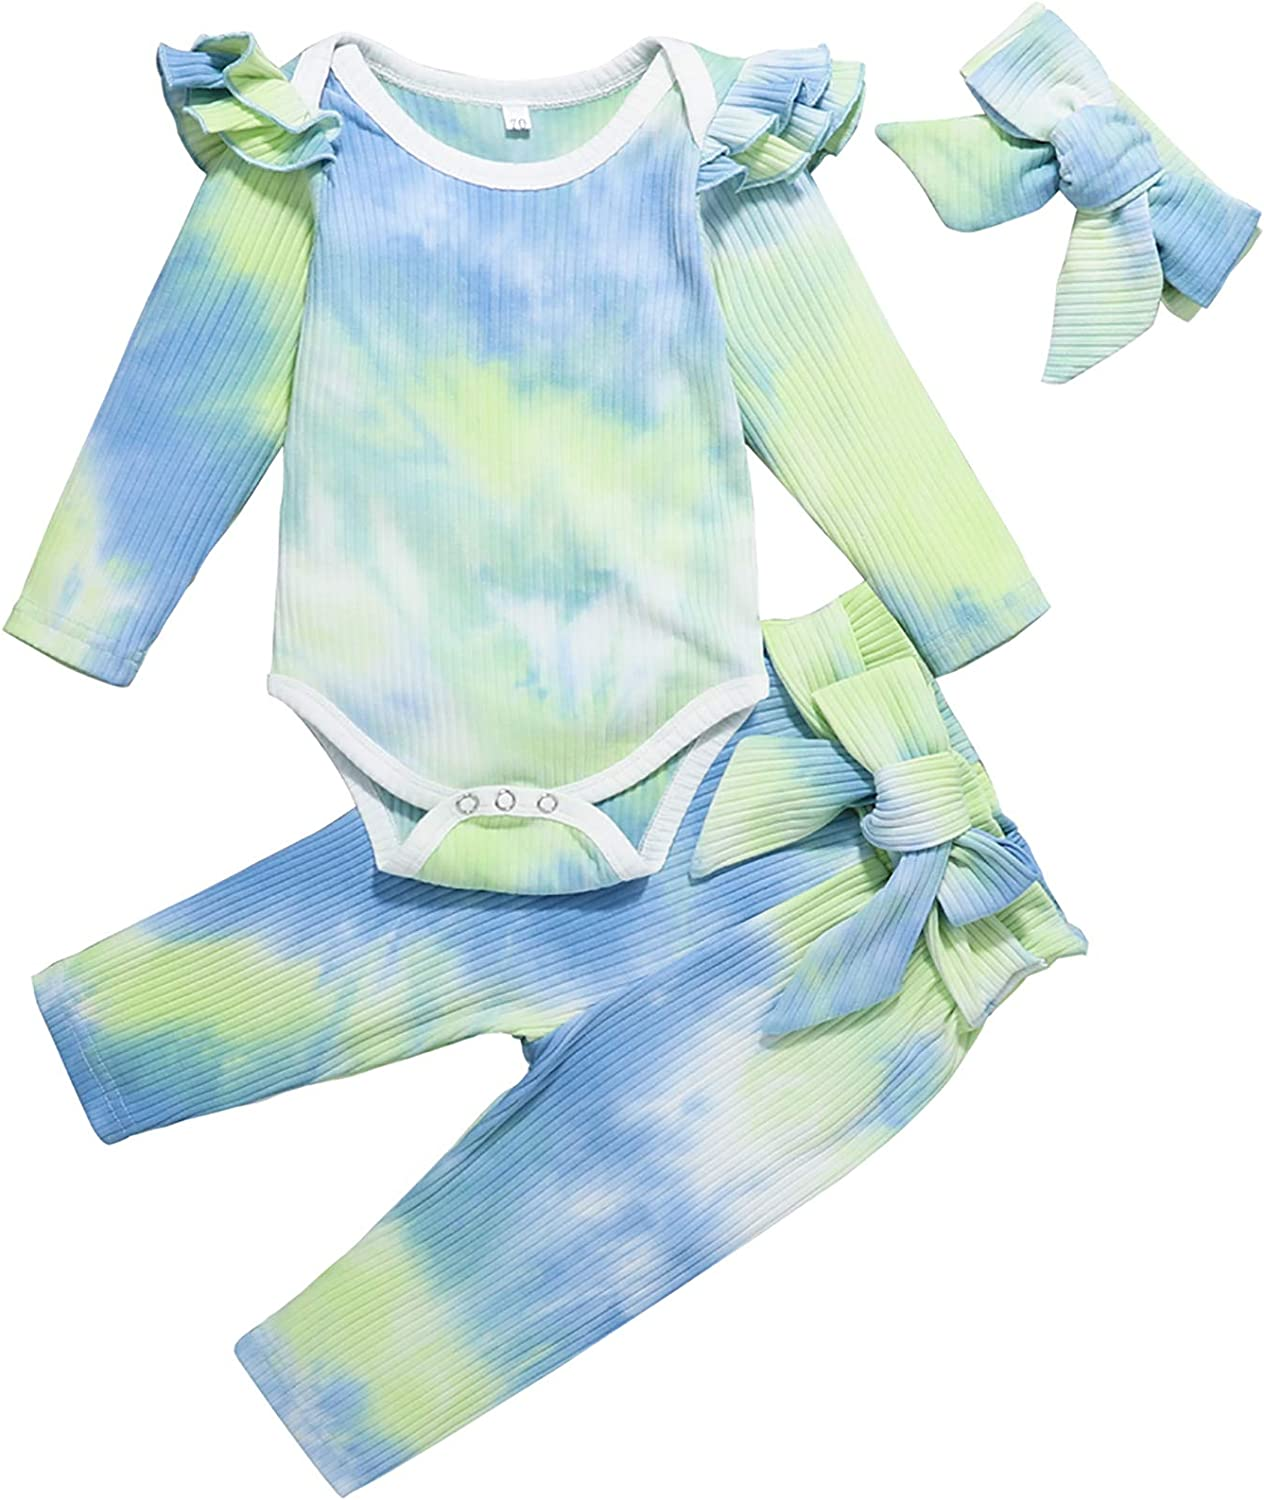 Kionio Baby Girl Clothes Outfits Ruffle Shirt Sleeve Tops OFFicial store Soldering Long B